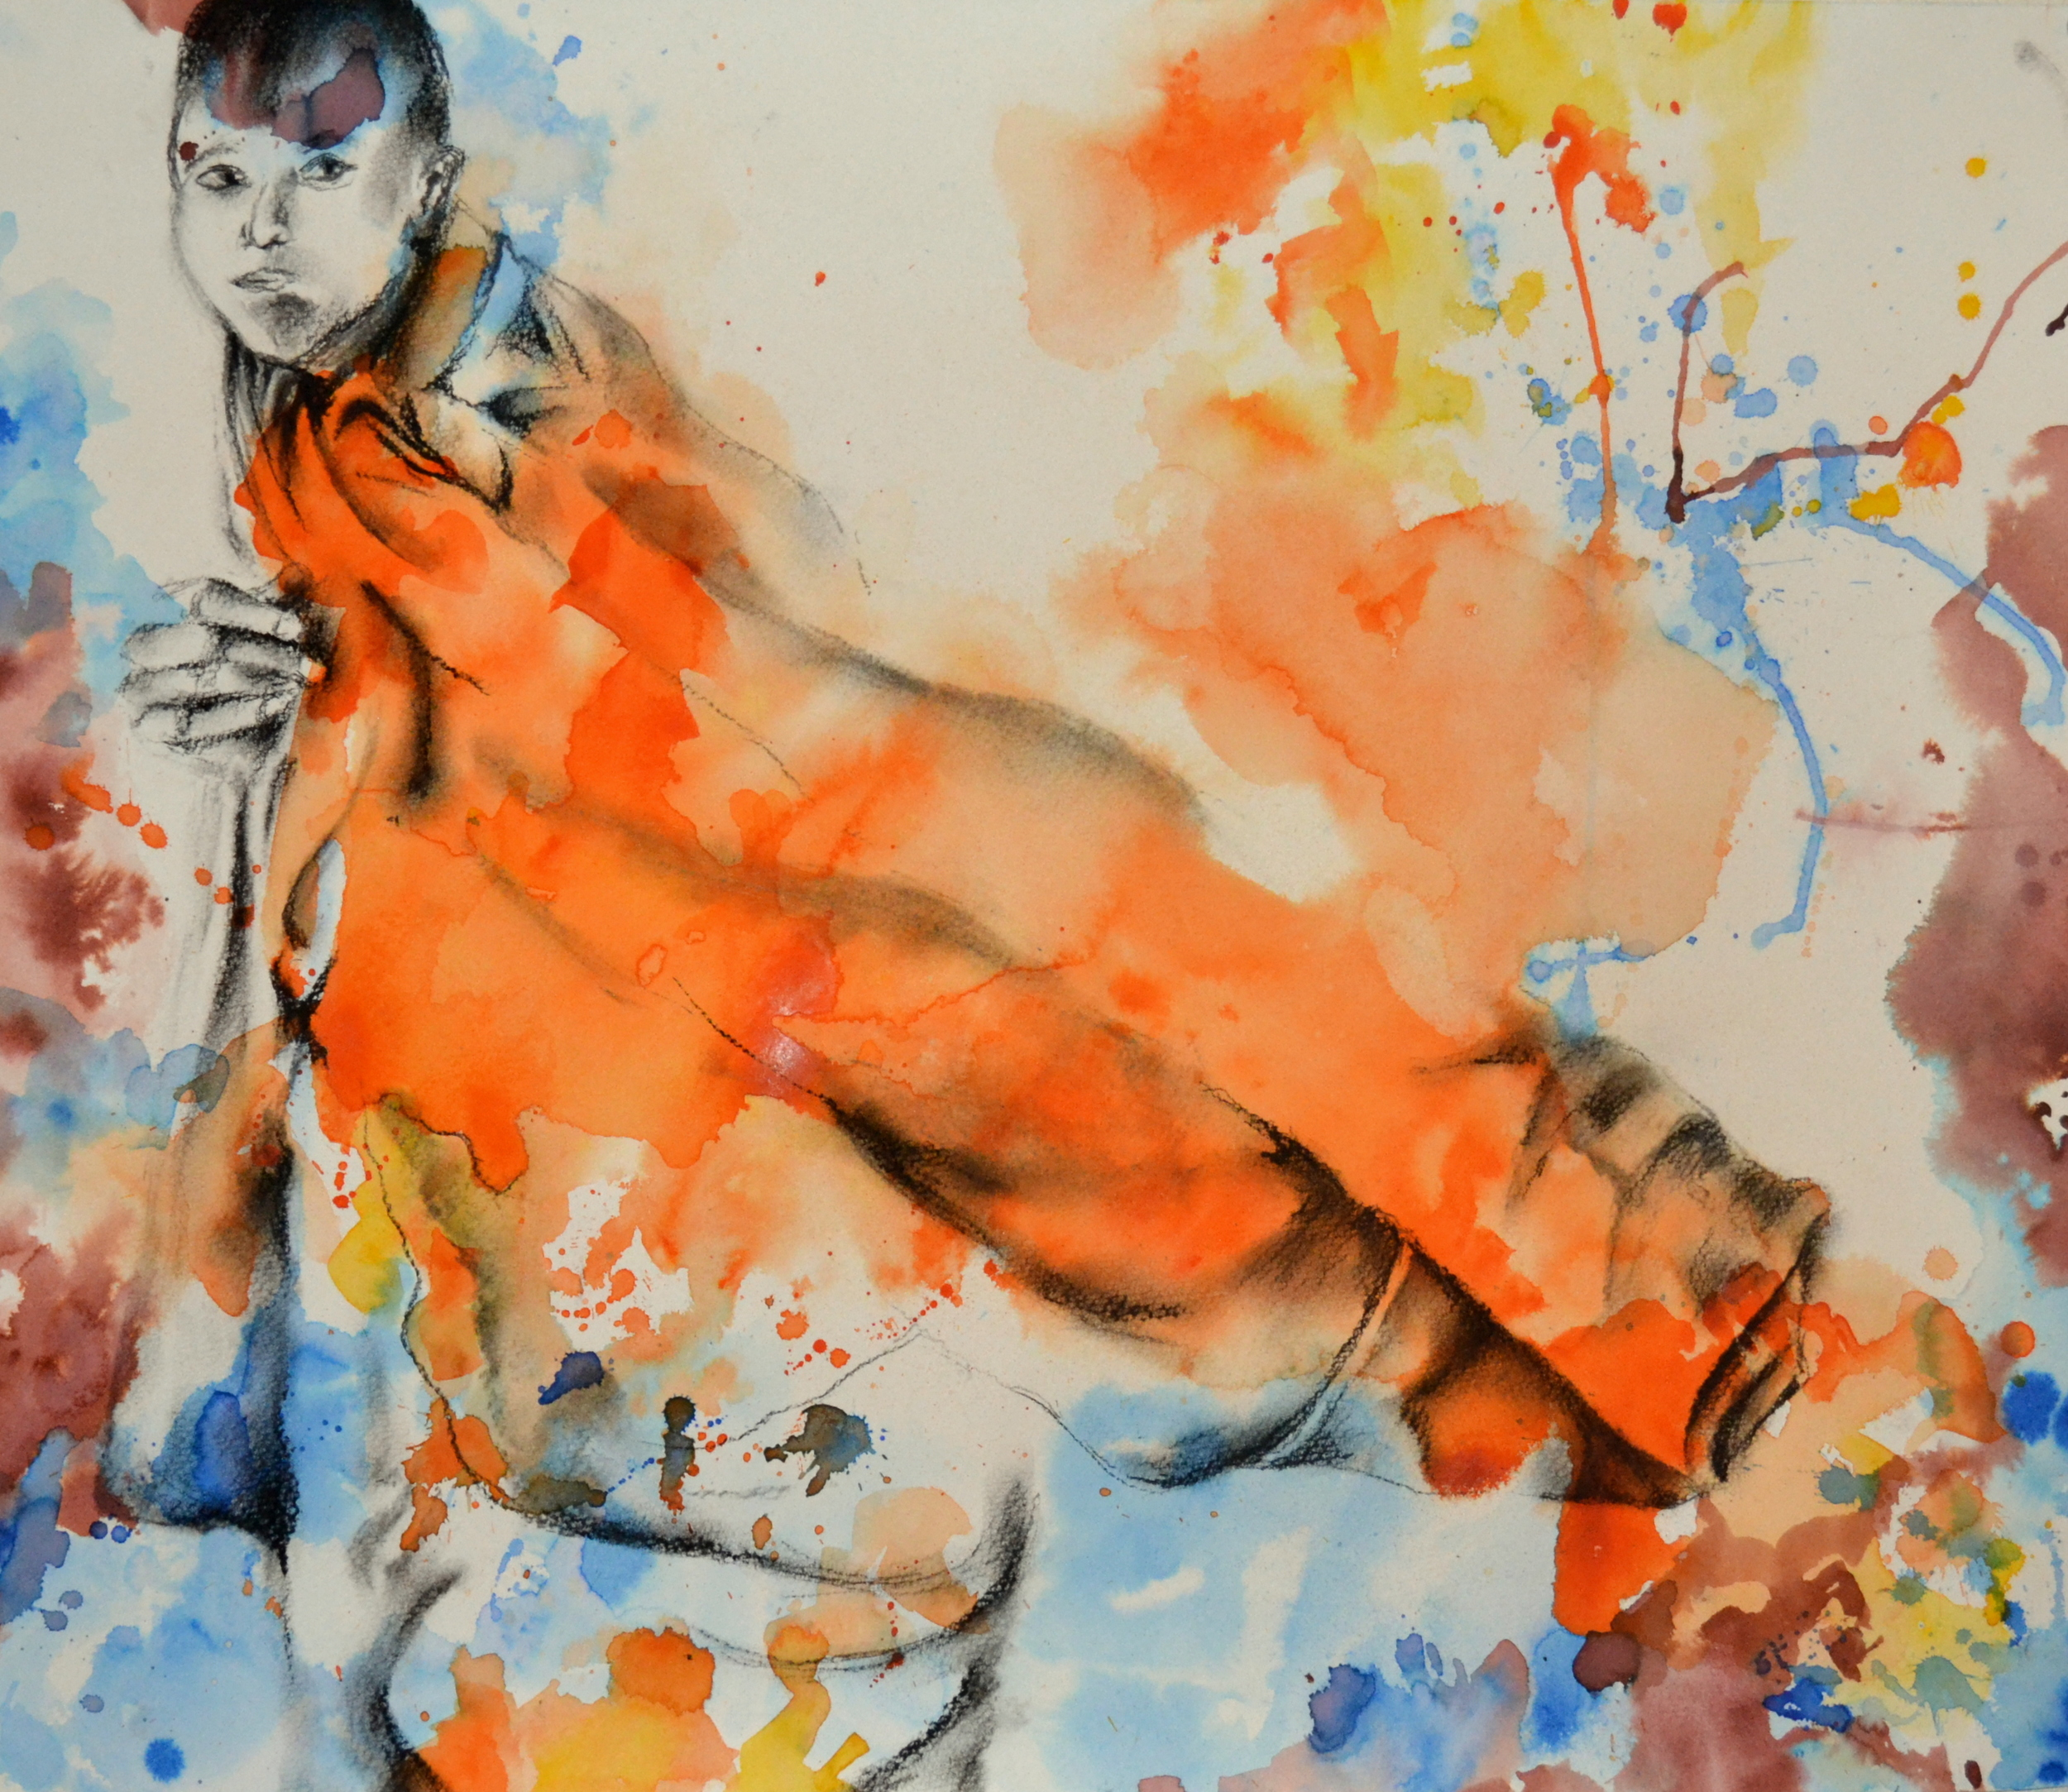 HONORABLE MENTION  - The Orange Robe (2014) | Meghana Deodhar | Acrylic, ink and charcoal on paper | 24x20"